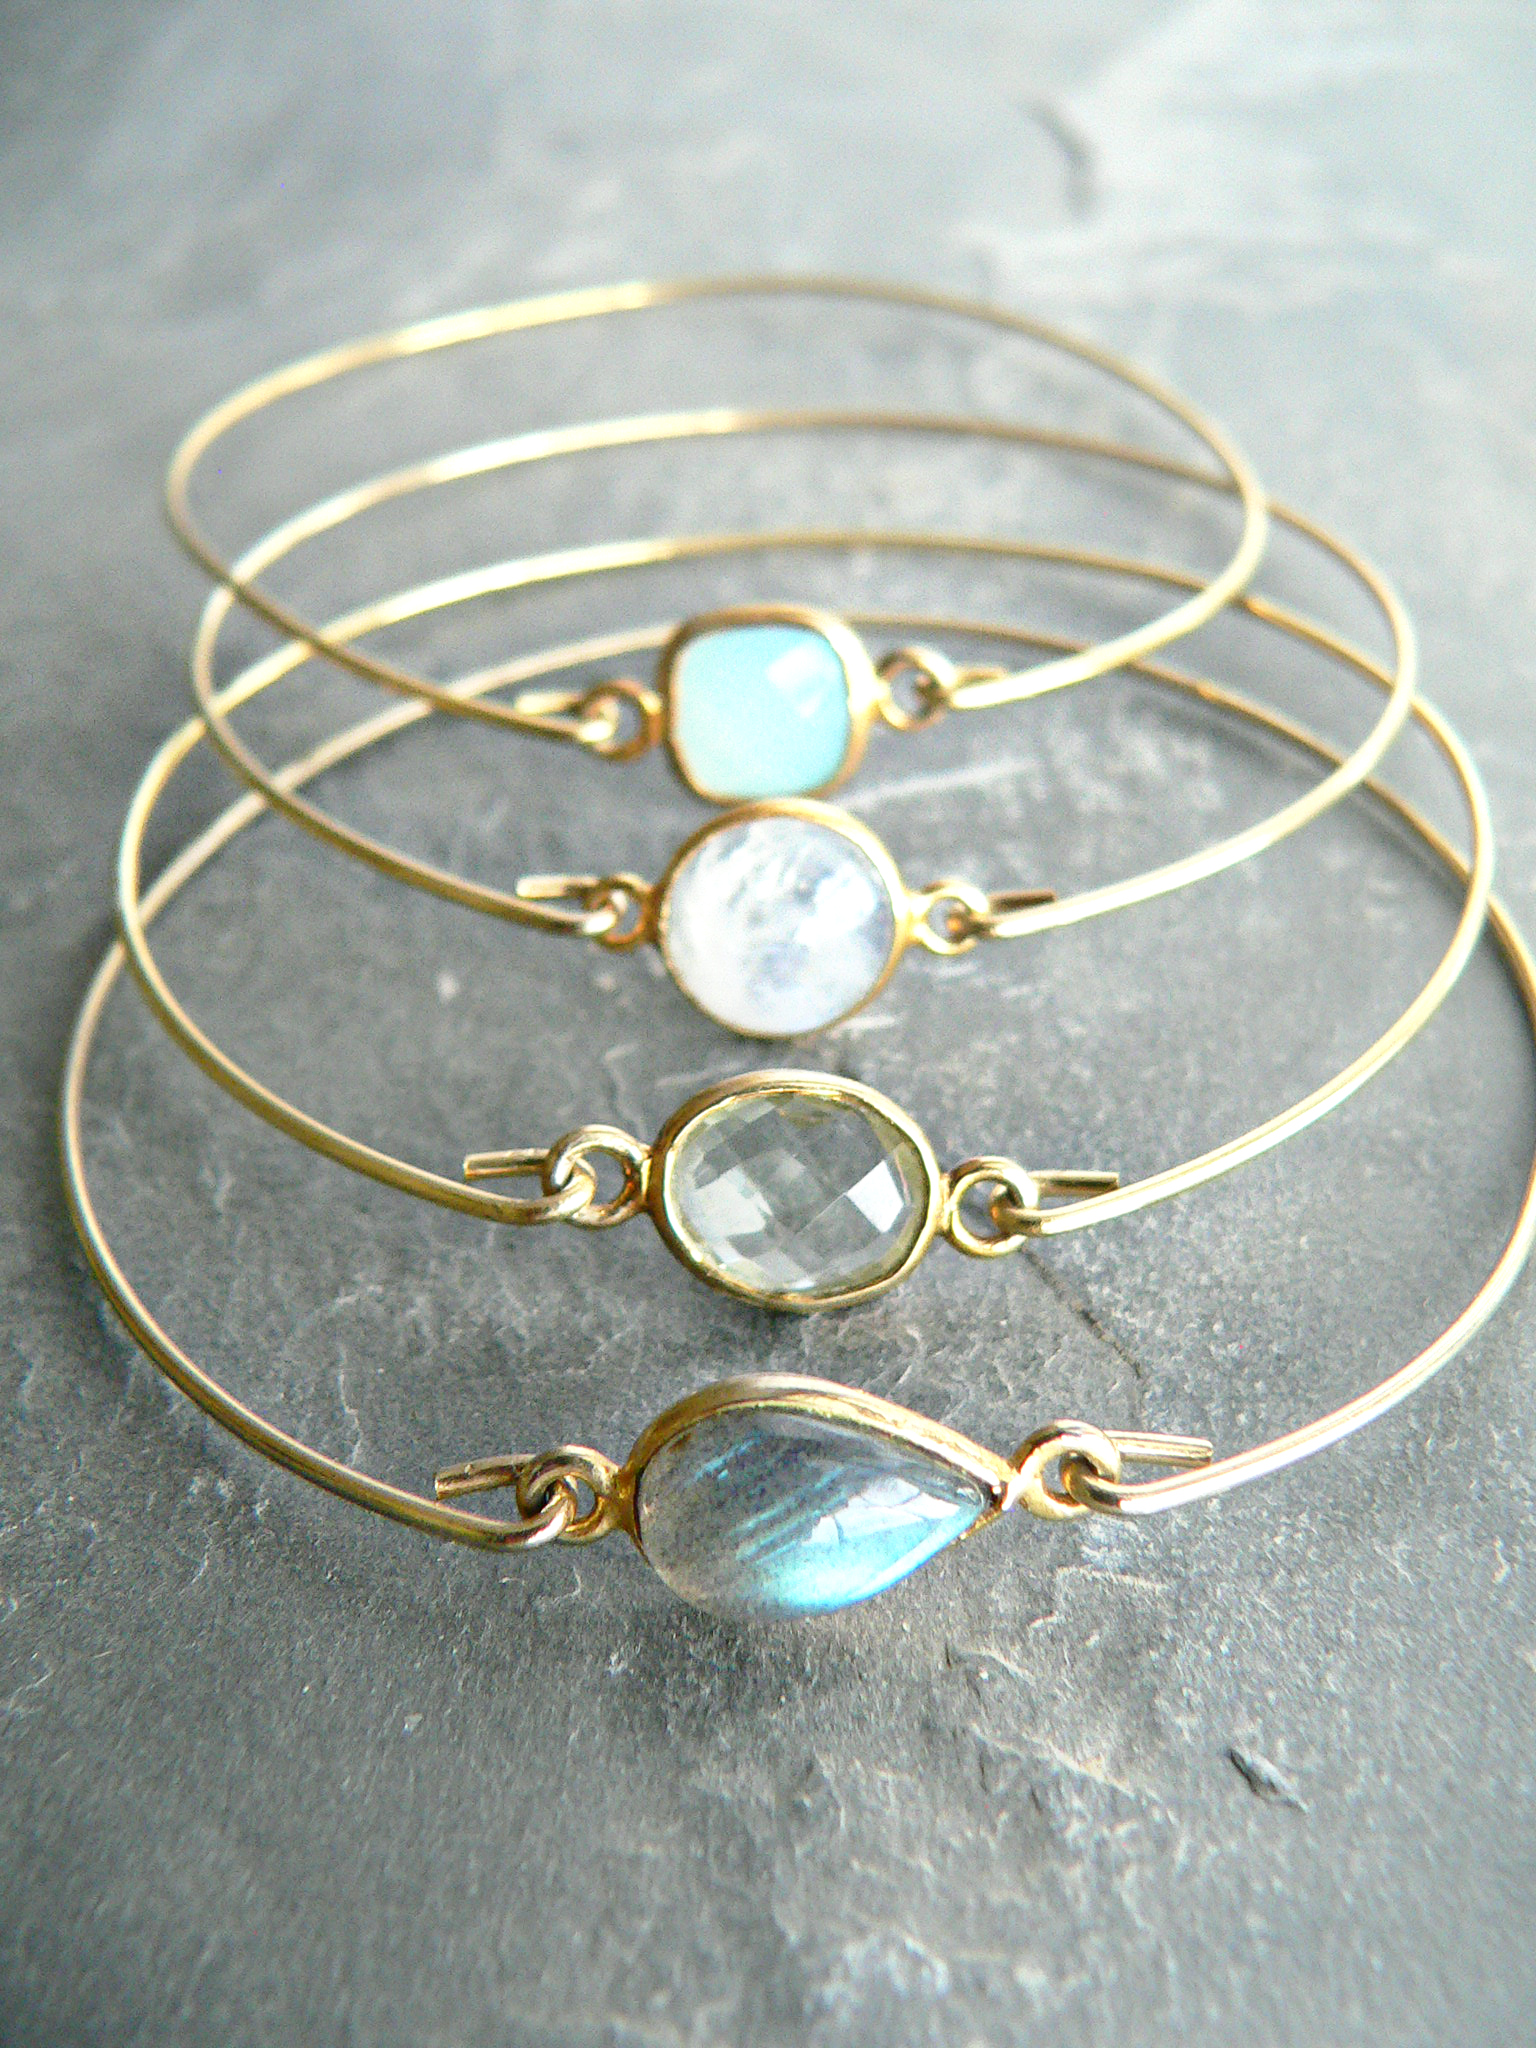 GEMSTONE BANGLE BRACELET SET